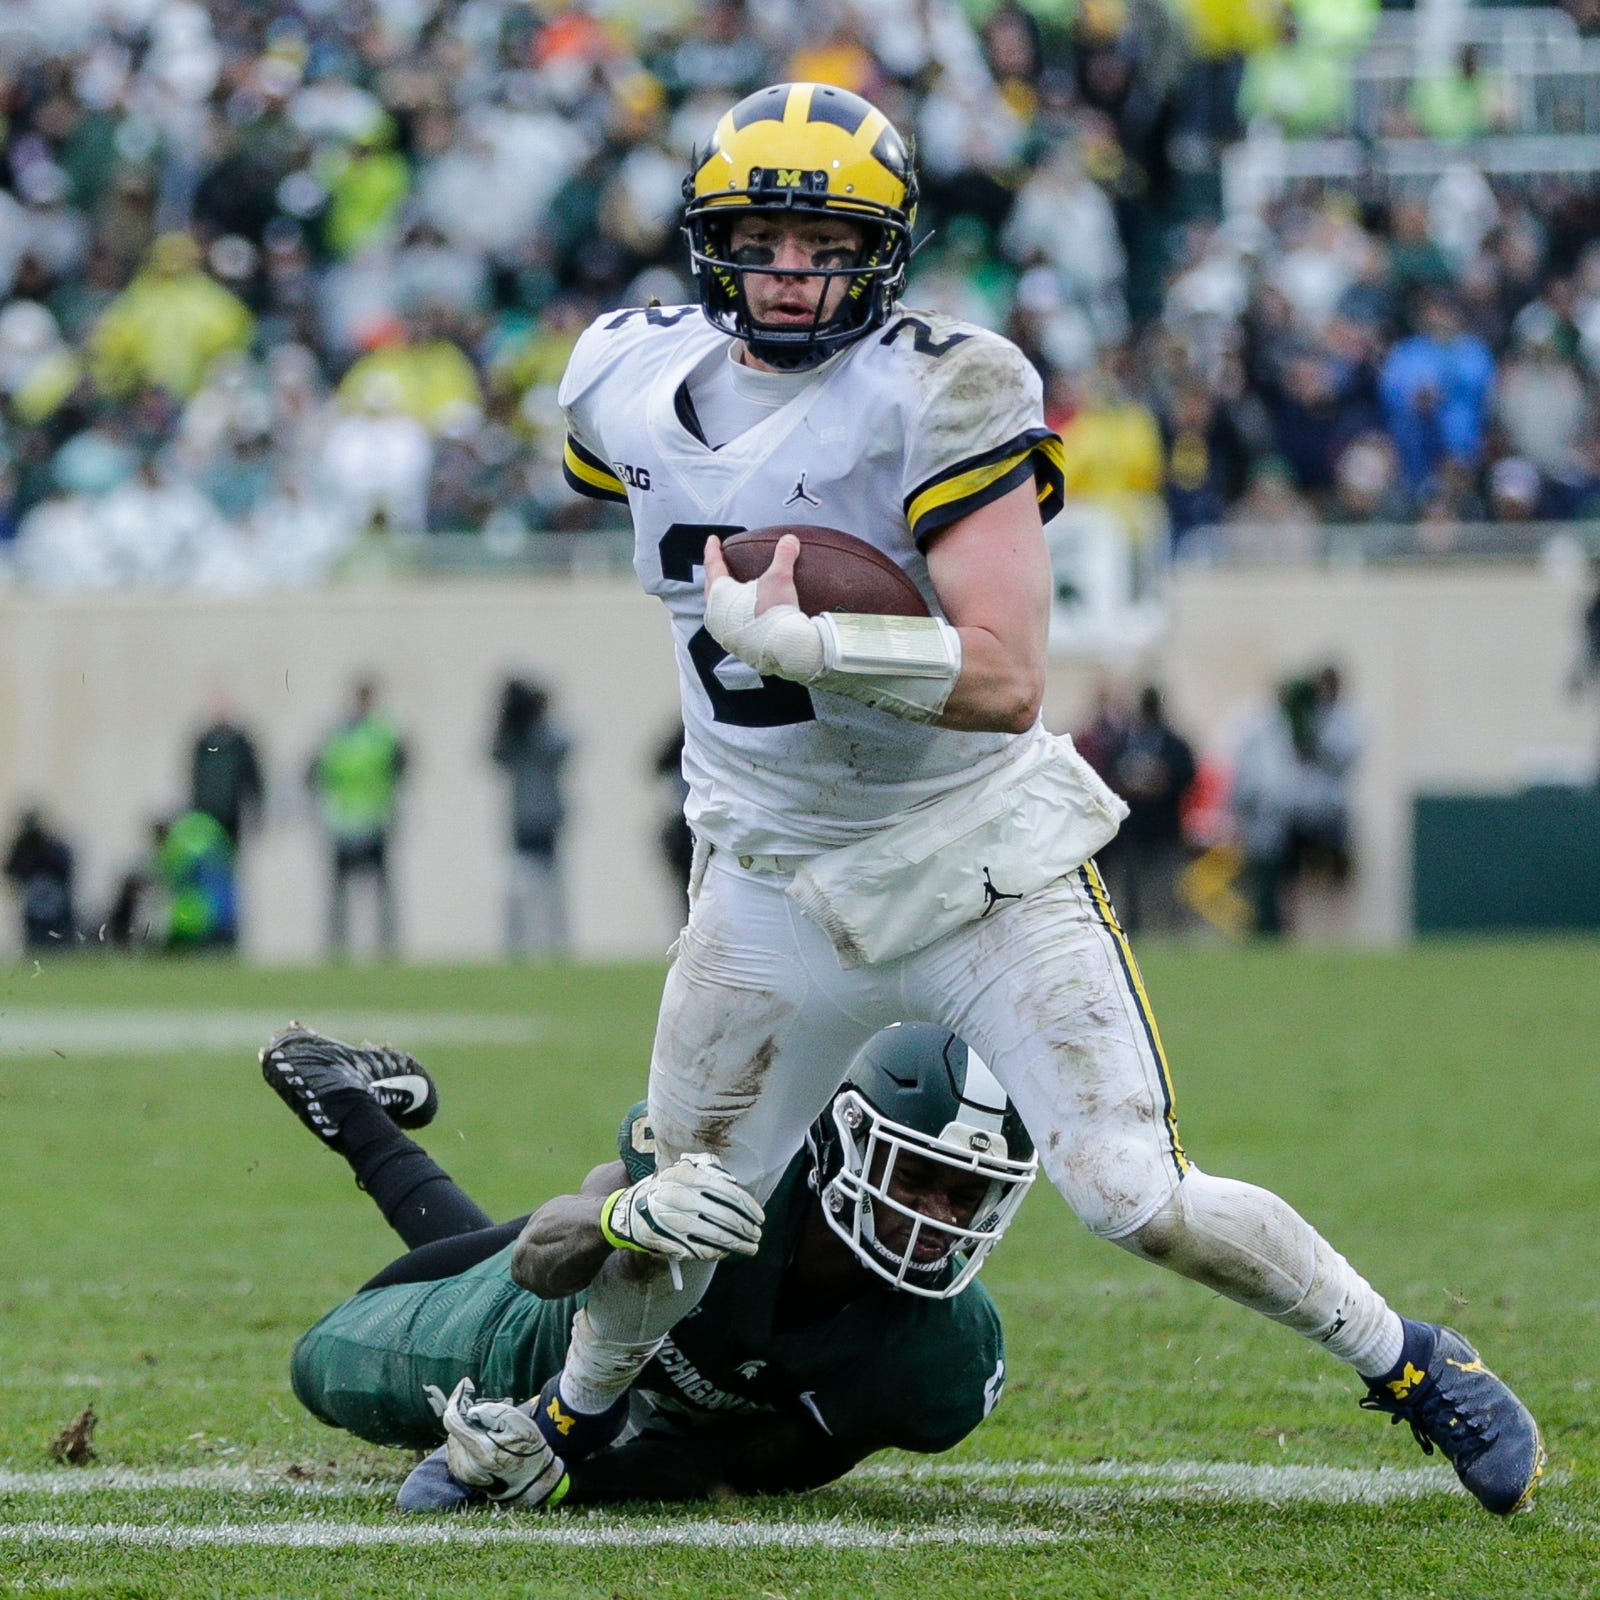 Michigan quarterback Shea Patterson runs against Michigan State during the second half at Spartan Stadium in East Lansing, Saturday, Oct. 20, 2018.